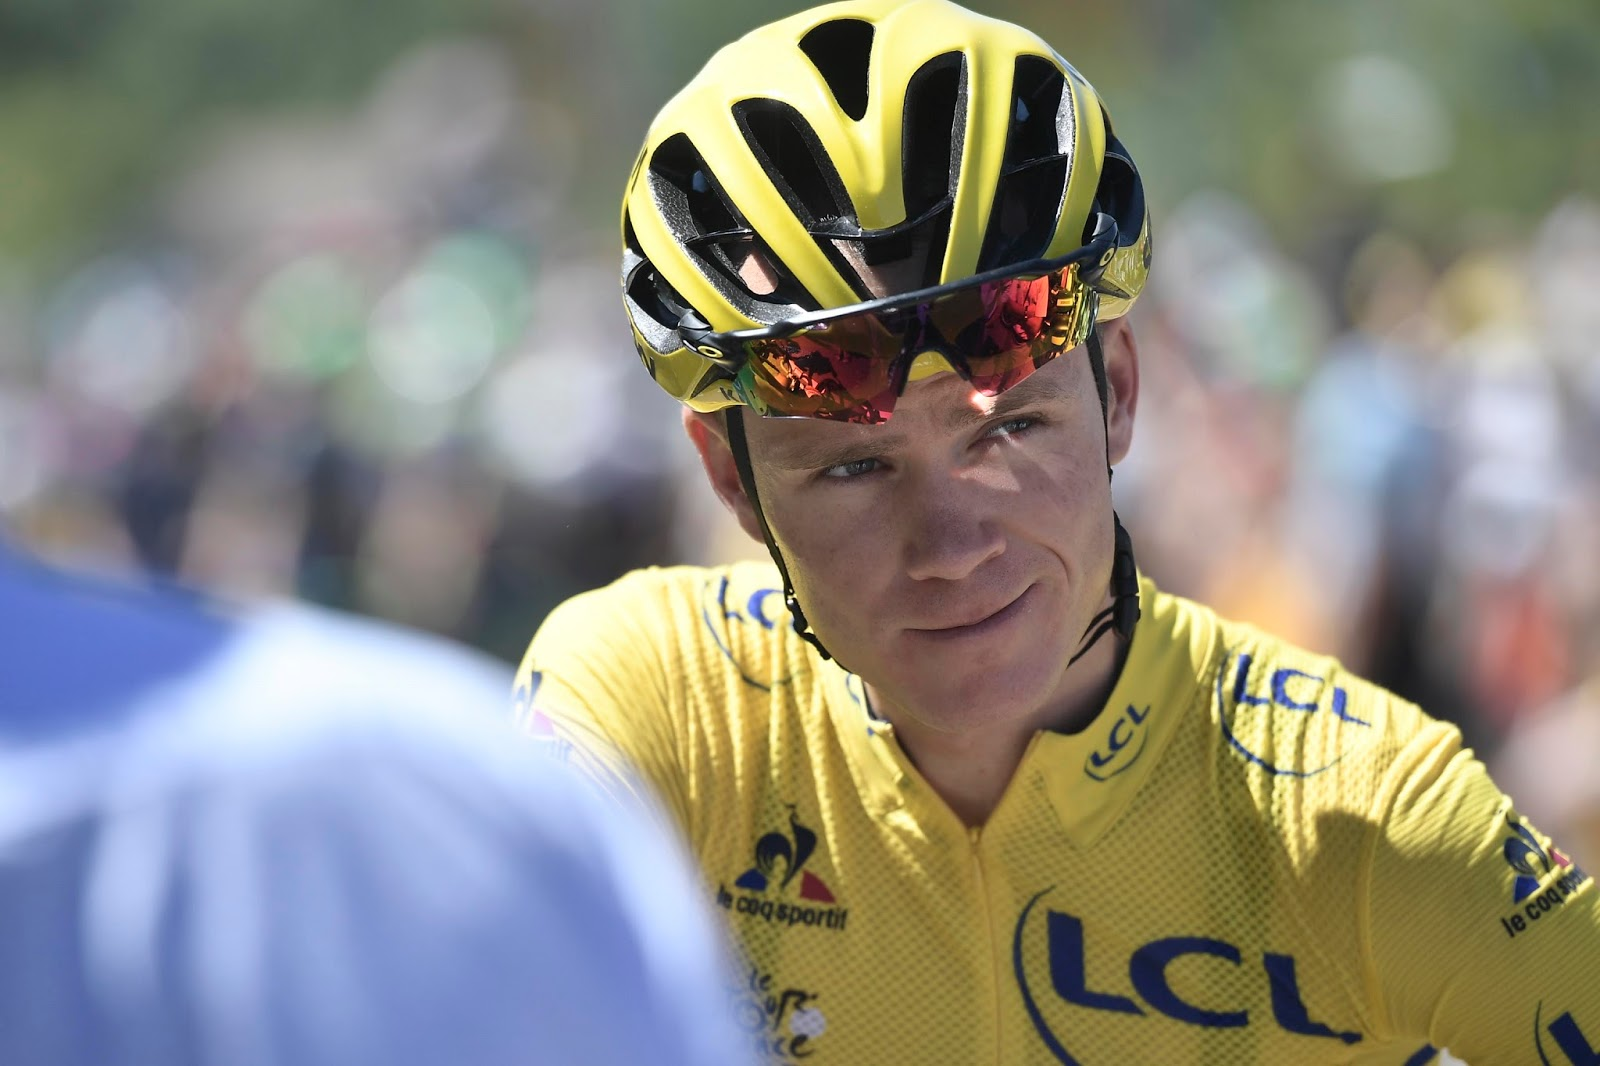 CHRIS FROOME 6